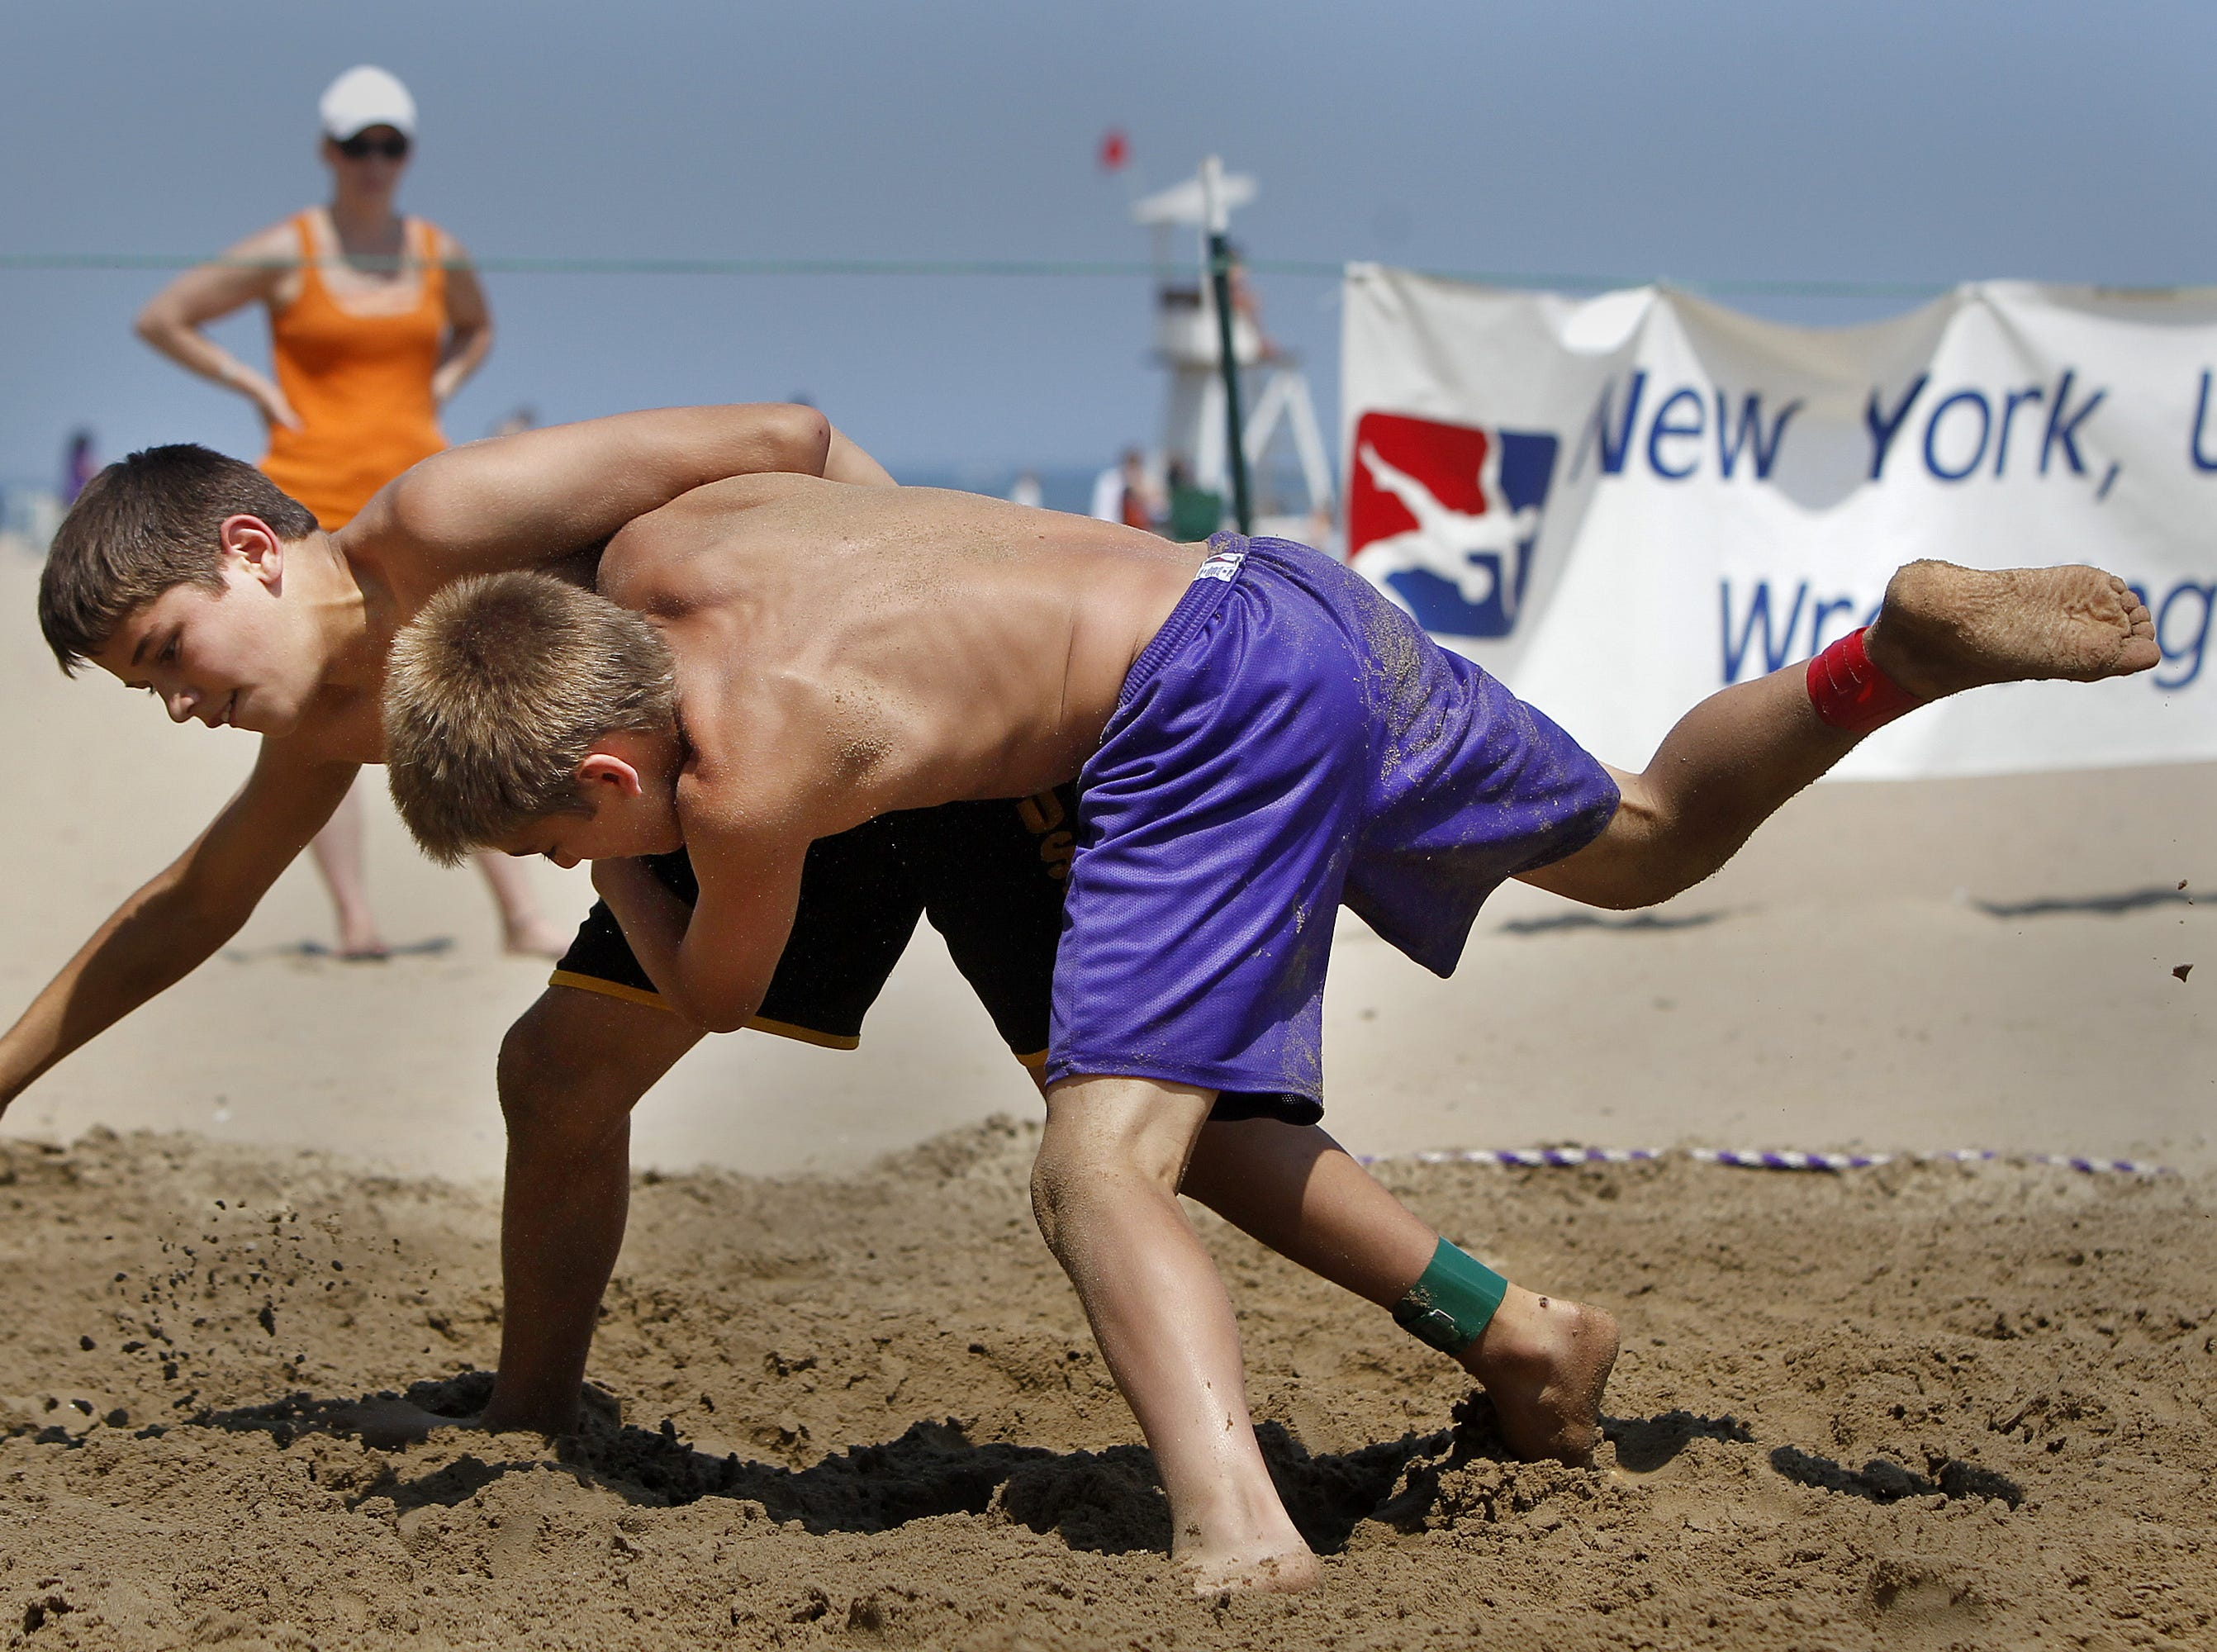 Yianni Diakomihalis, 12, of Greece, left, and Parker Kropman, 13, of Penfield, each look for the takedown in 103-lb. weight class during beach wrestling during the annual Ontario Beach Sports and Music festival, which included beach volleyball, sand wrestling, pickleball, and pole vault, Sunday afternoon, July 10, 2011.